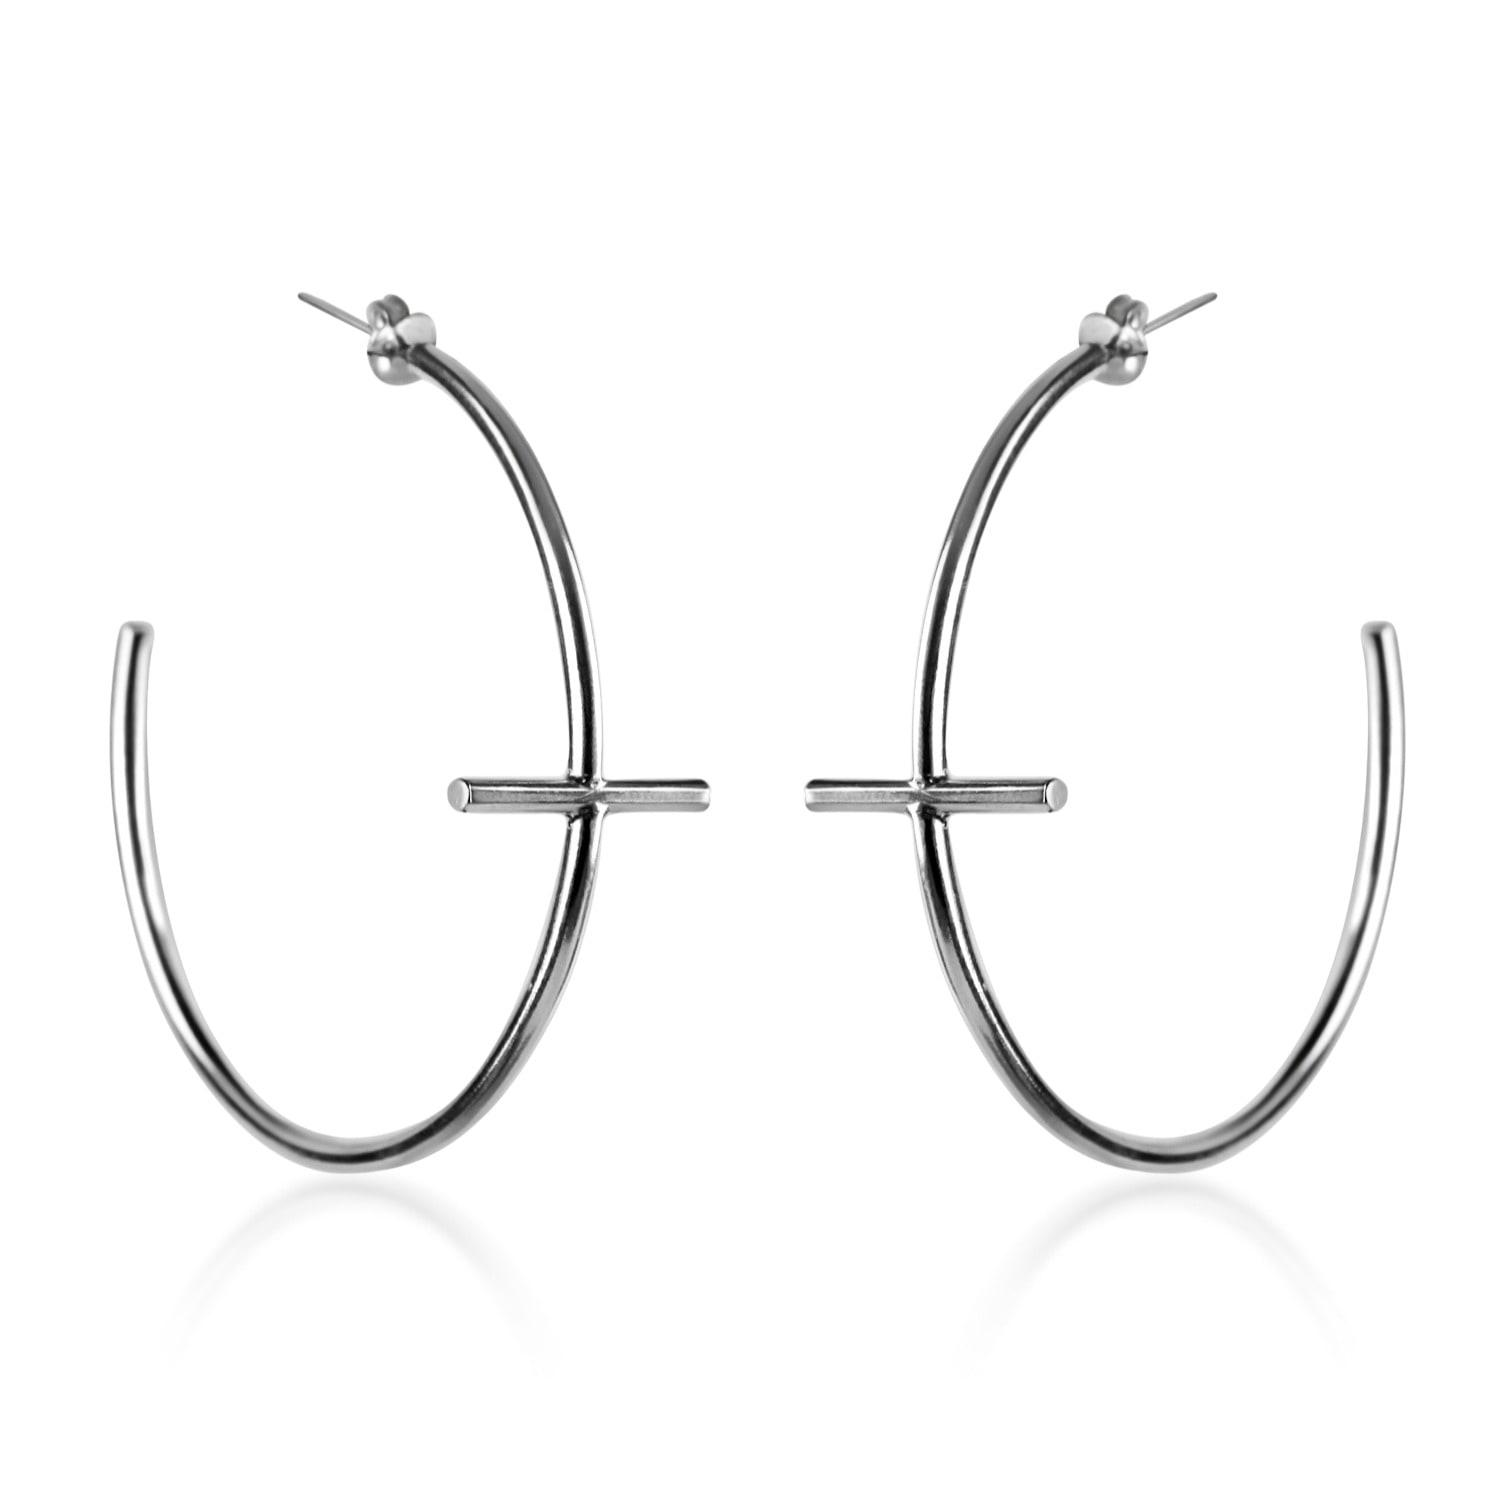 8bc8eac2f Lyst - Marcia Vidal Large Silver Cross Hoop Earrings in Metallic